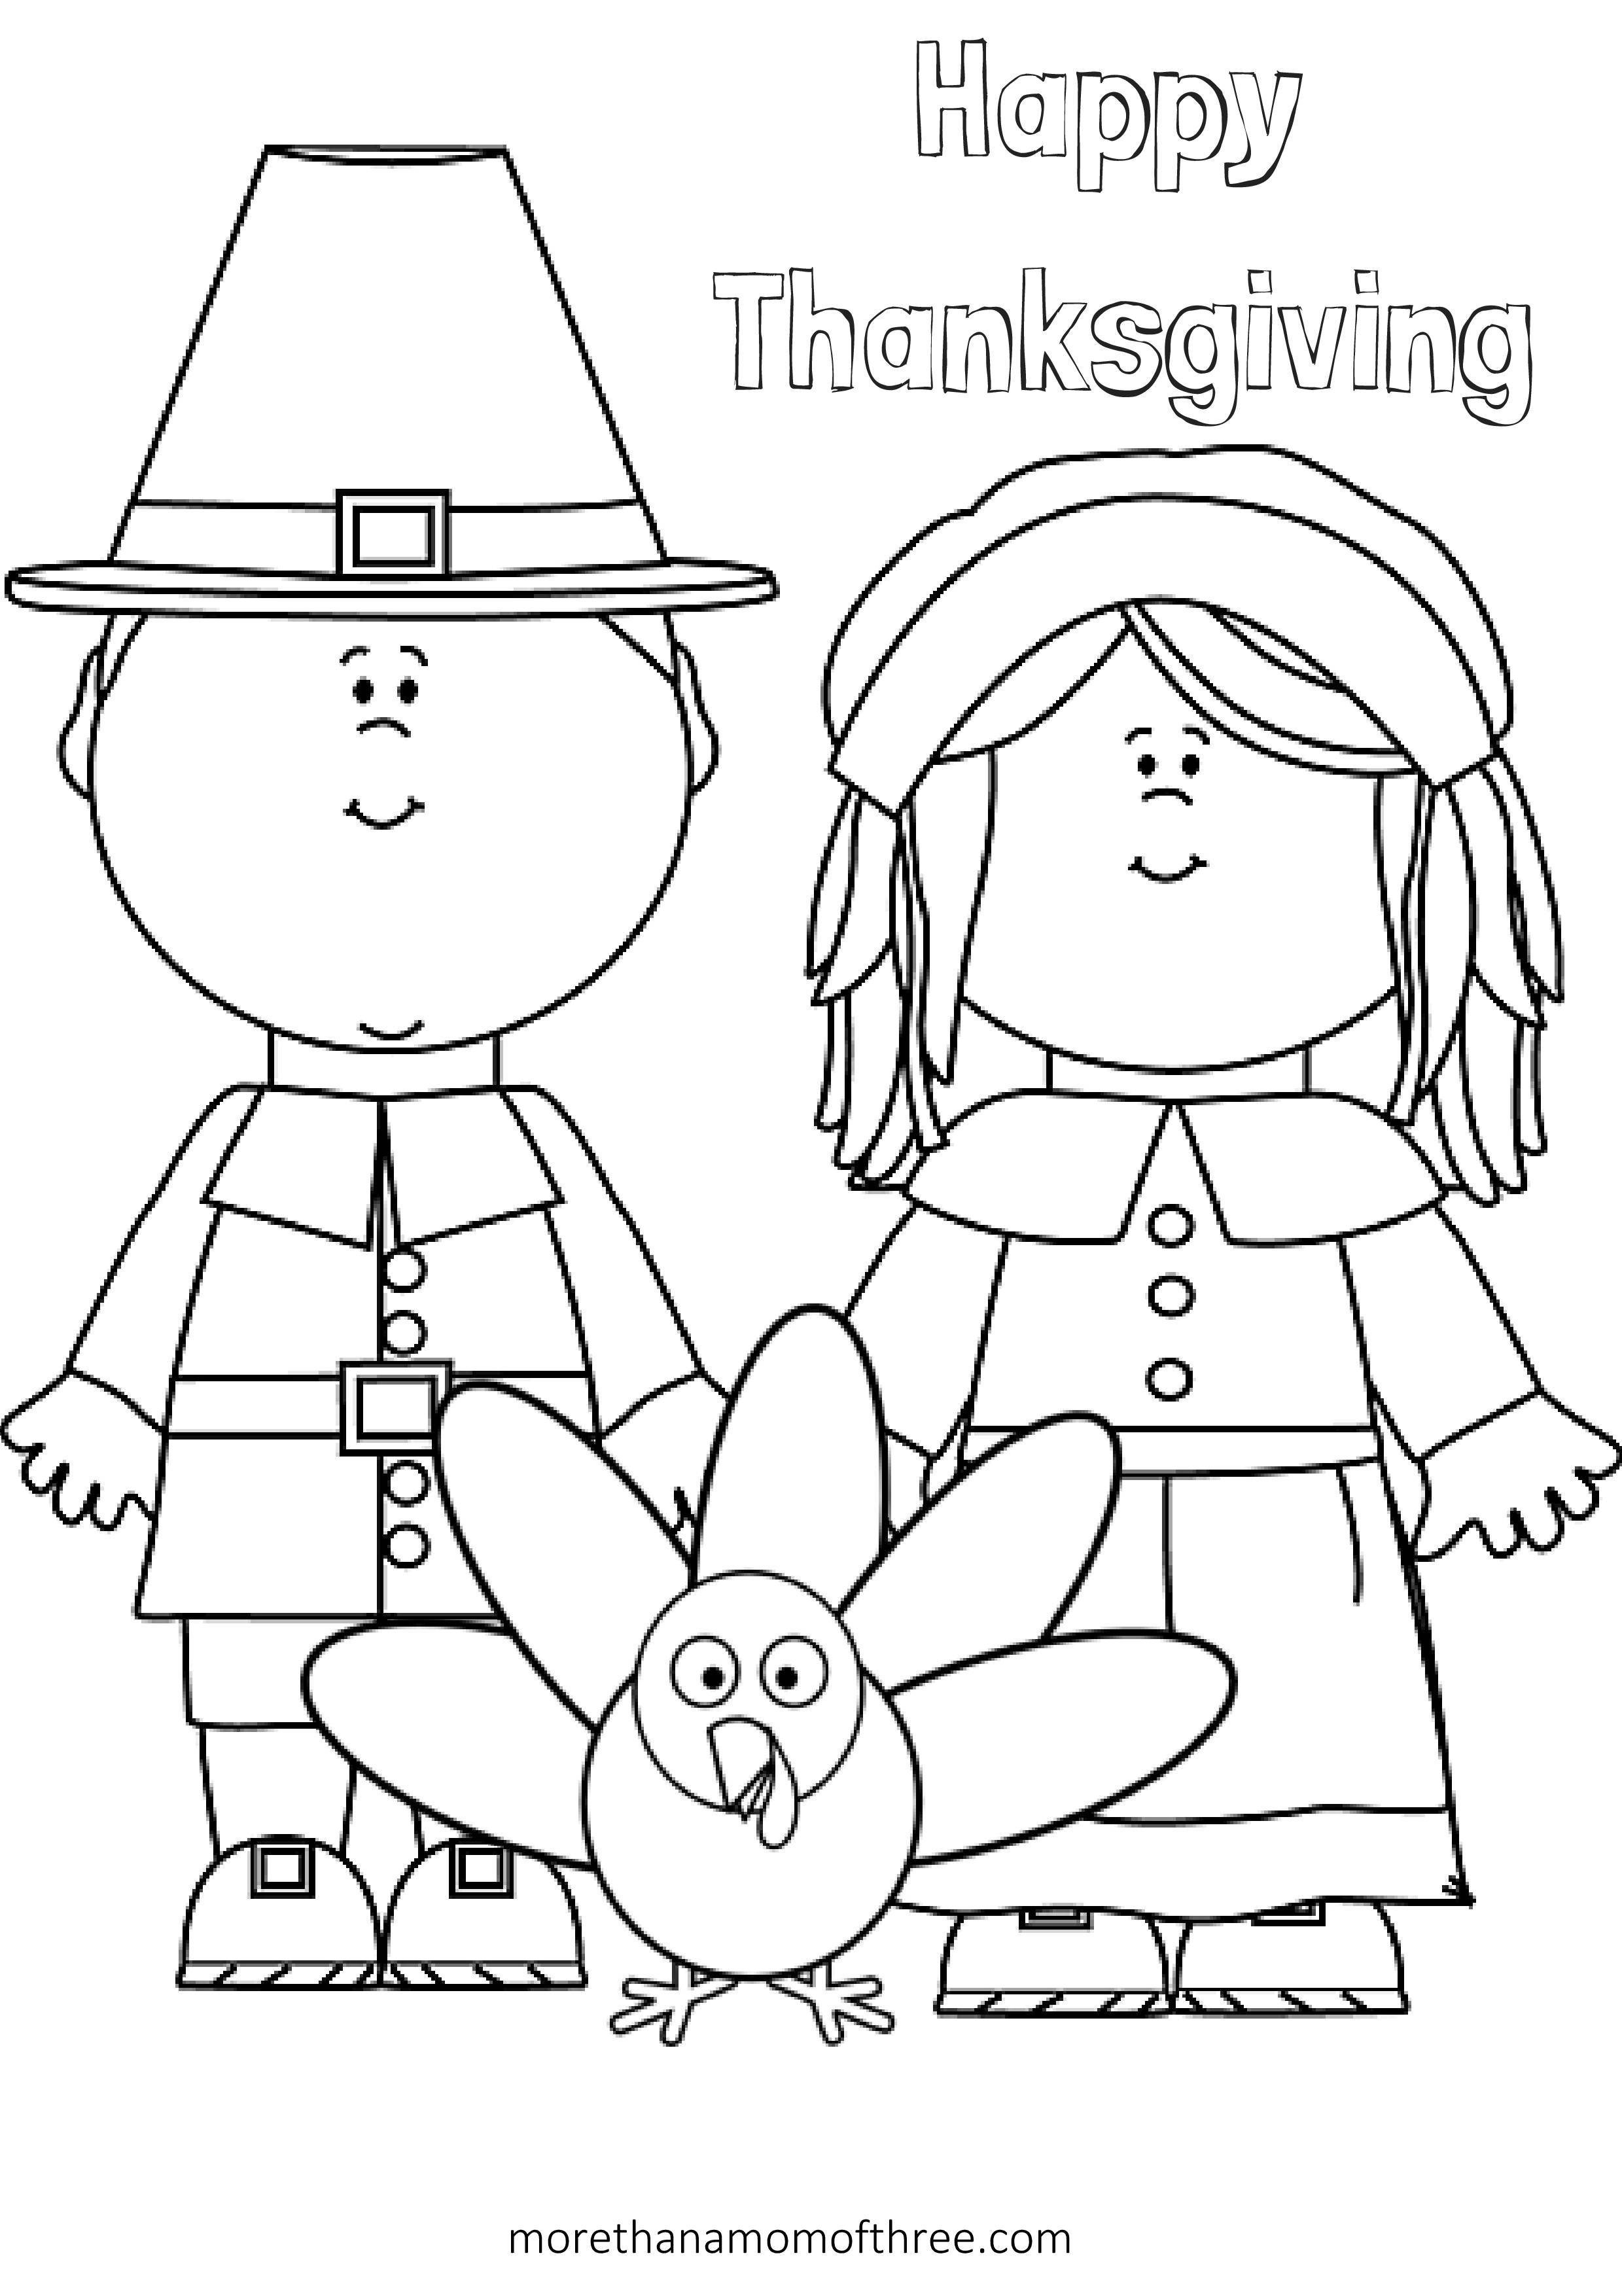 Printable Religious Thanksgiving Coloring Pages